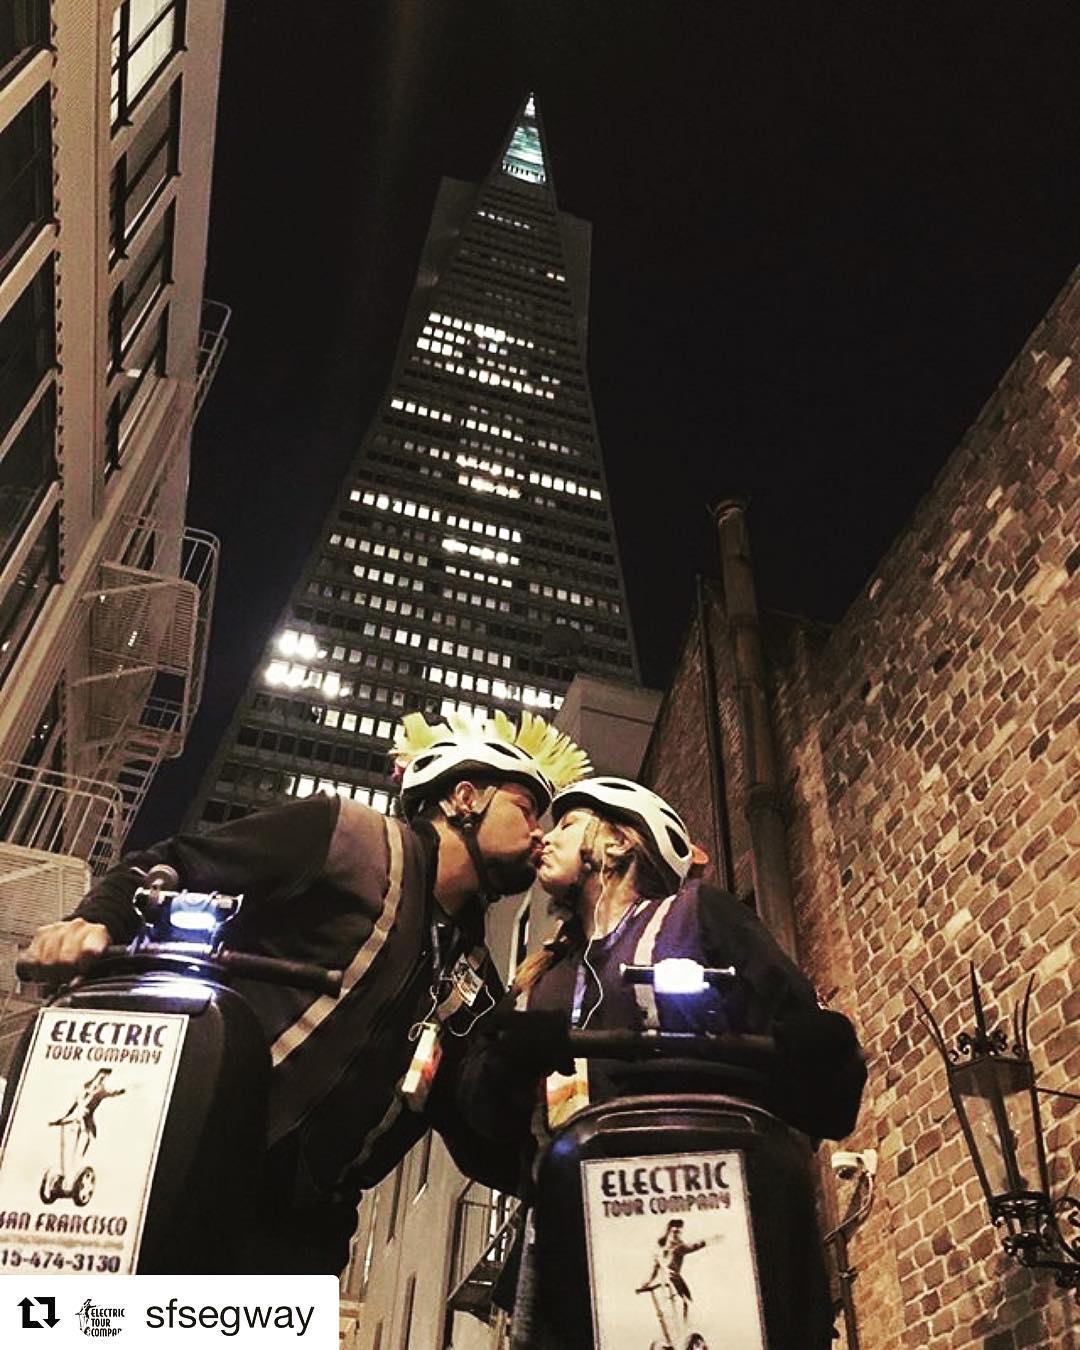 Segway tour of the day is this romantic pic taken in San Francico near the iconic Transmerica pyramid tower. The Electric Tour Company runs a night tour that includes the San Francisco waterfront, Fishermans wharf and Chinatown.  @sfsegway ・・・ San Francisco is for lovers ️ Grab your significant other and join us gliding near the Transamerica Pyramid this summer. Don't wait- Book your nighttime Segway tour and you will get to check out the @exploratorium @sfferrybuilding @pier39 plus glide thru Chinatown and onto the Embarcadero. Here's to having more silliness, fun and frivolity on your vacation. . .